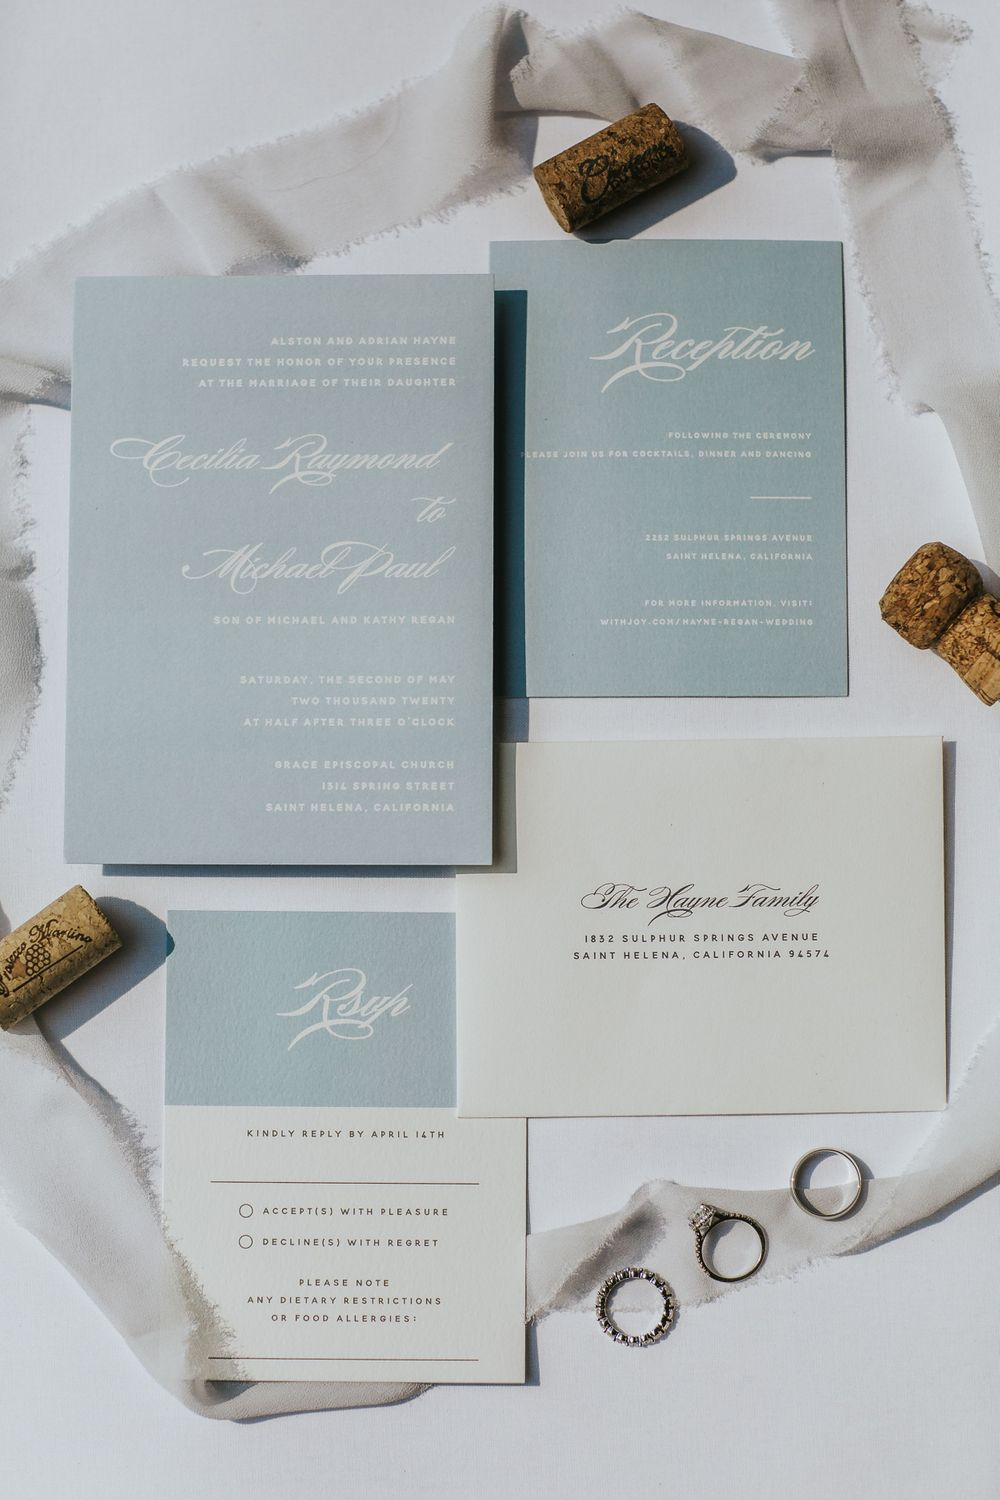 rebecca skidgel photography st helena napa valley wedding covid19 flat lay photo photography wedding invitations